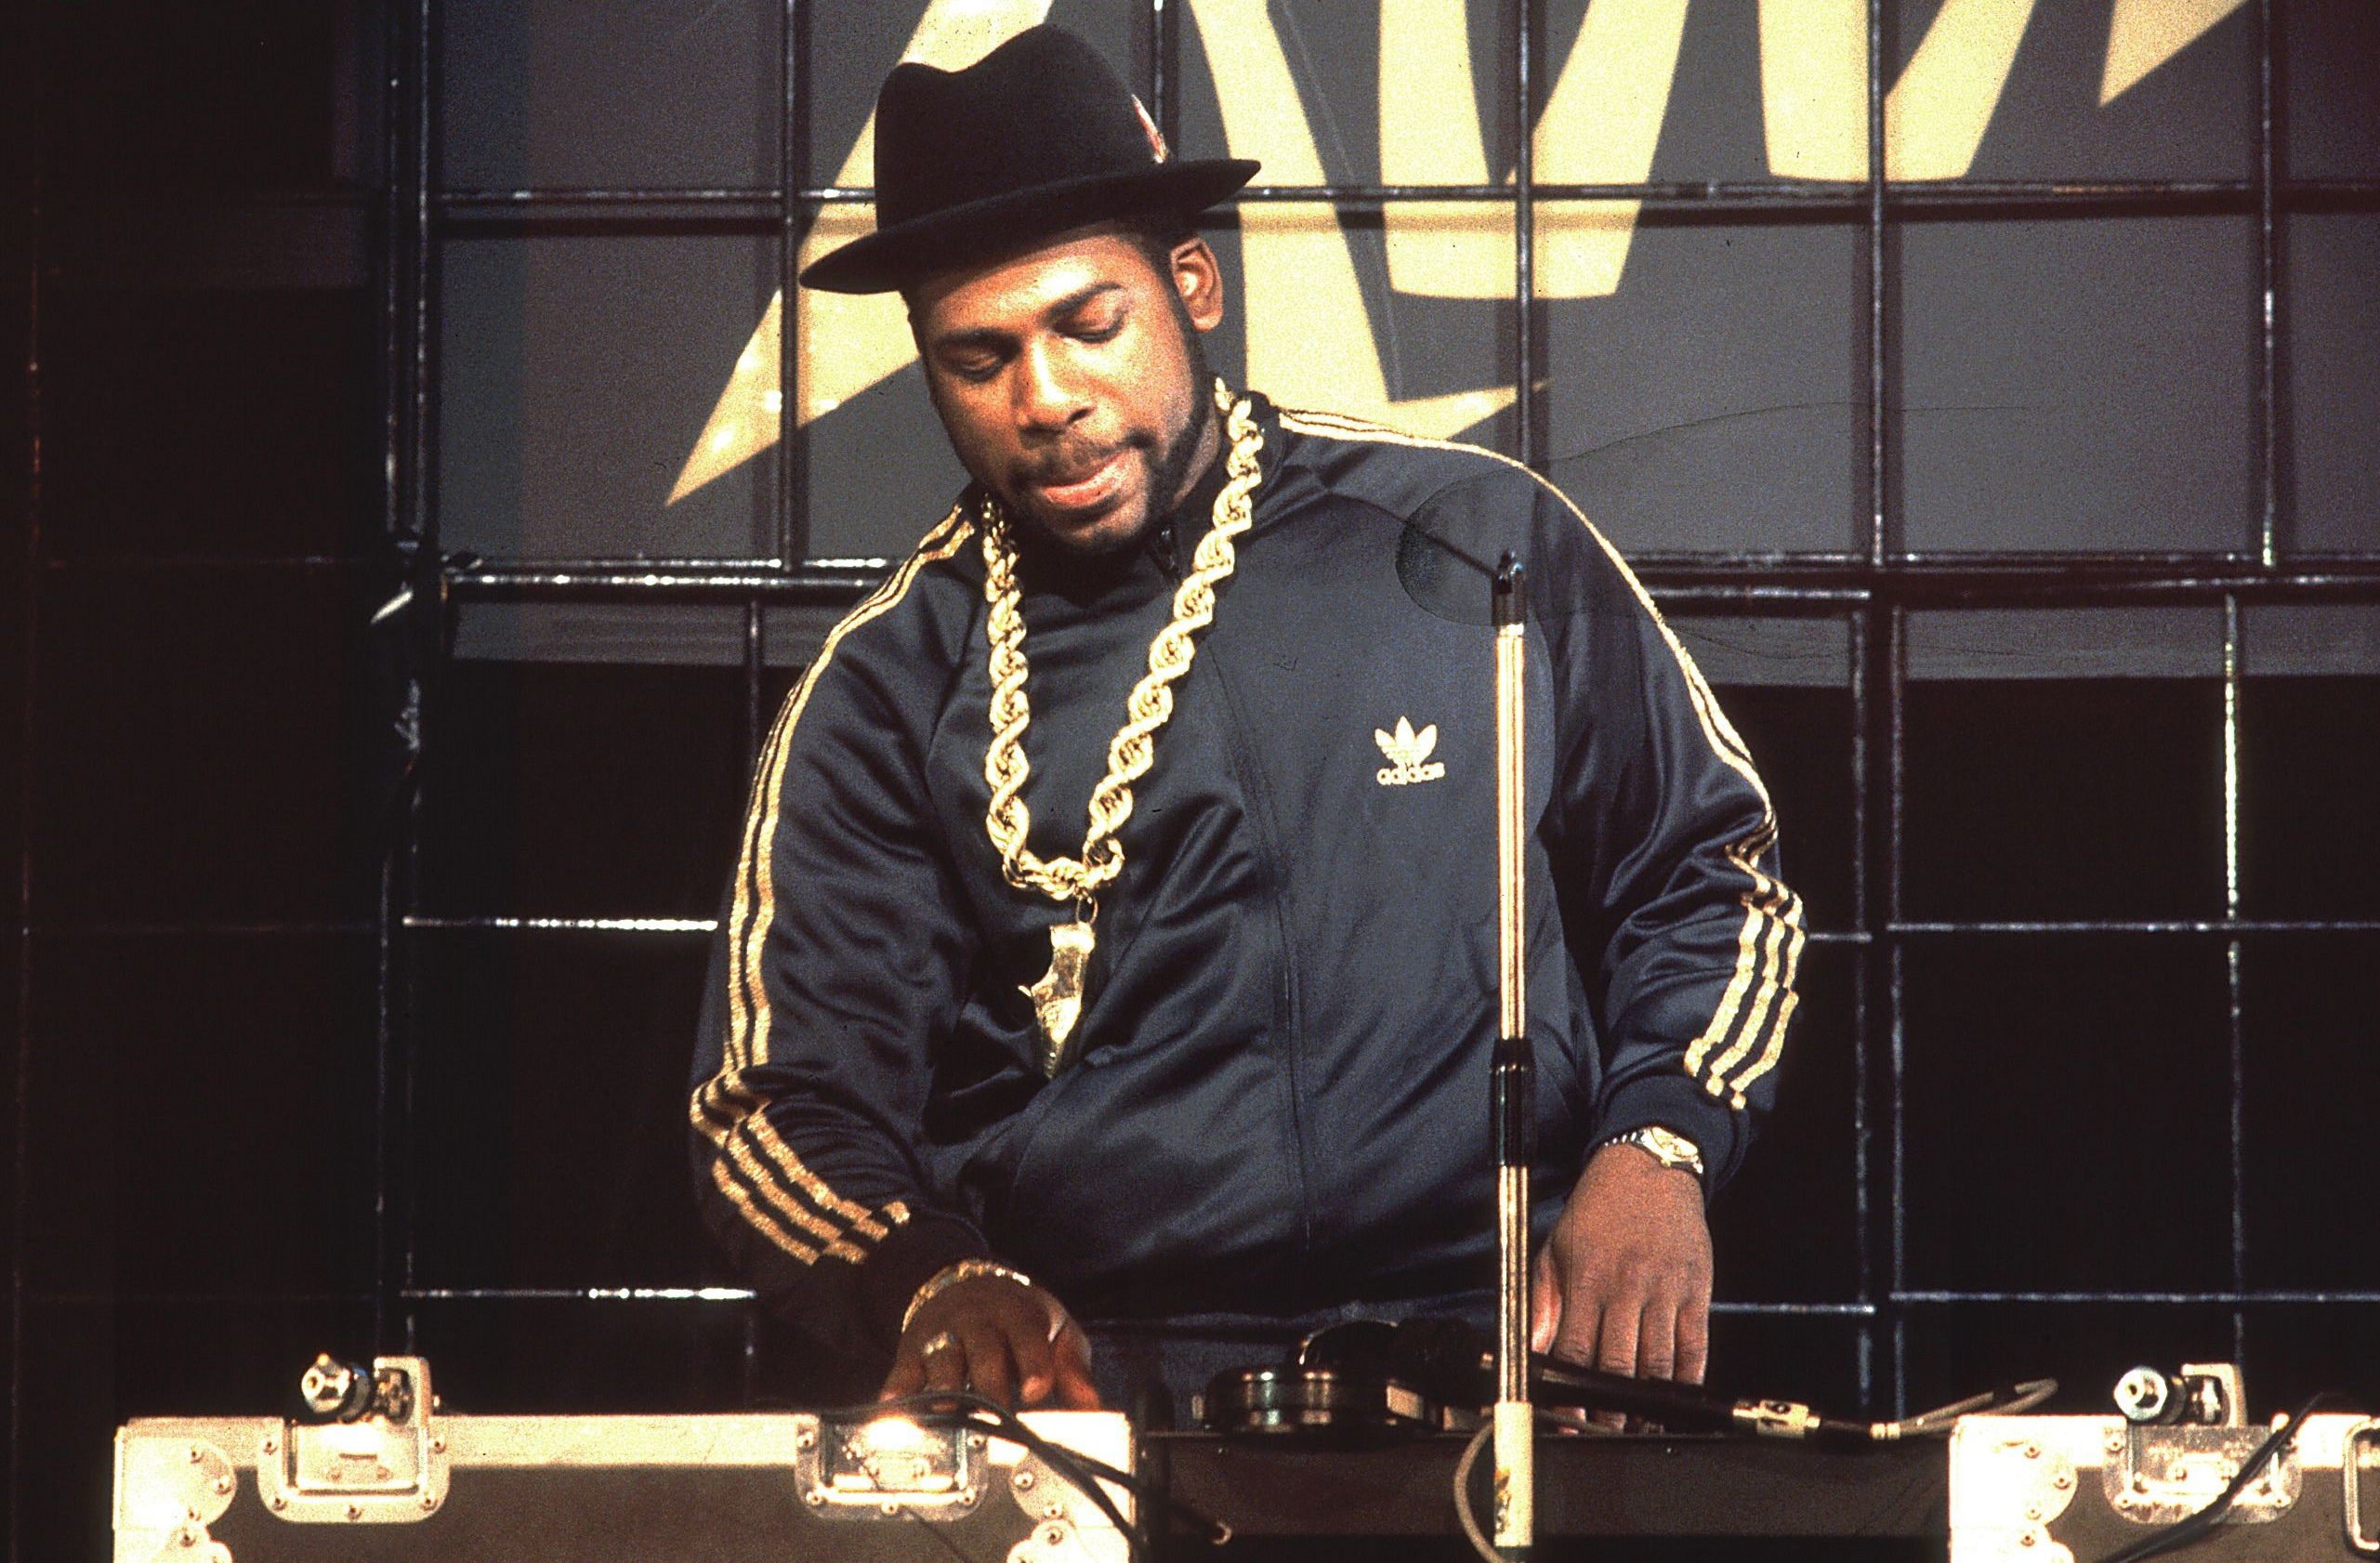 Exclusive DJ Workshop & Historical Session at the Academy Founded by Jam Master Jay: In New York, New York (1)